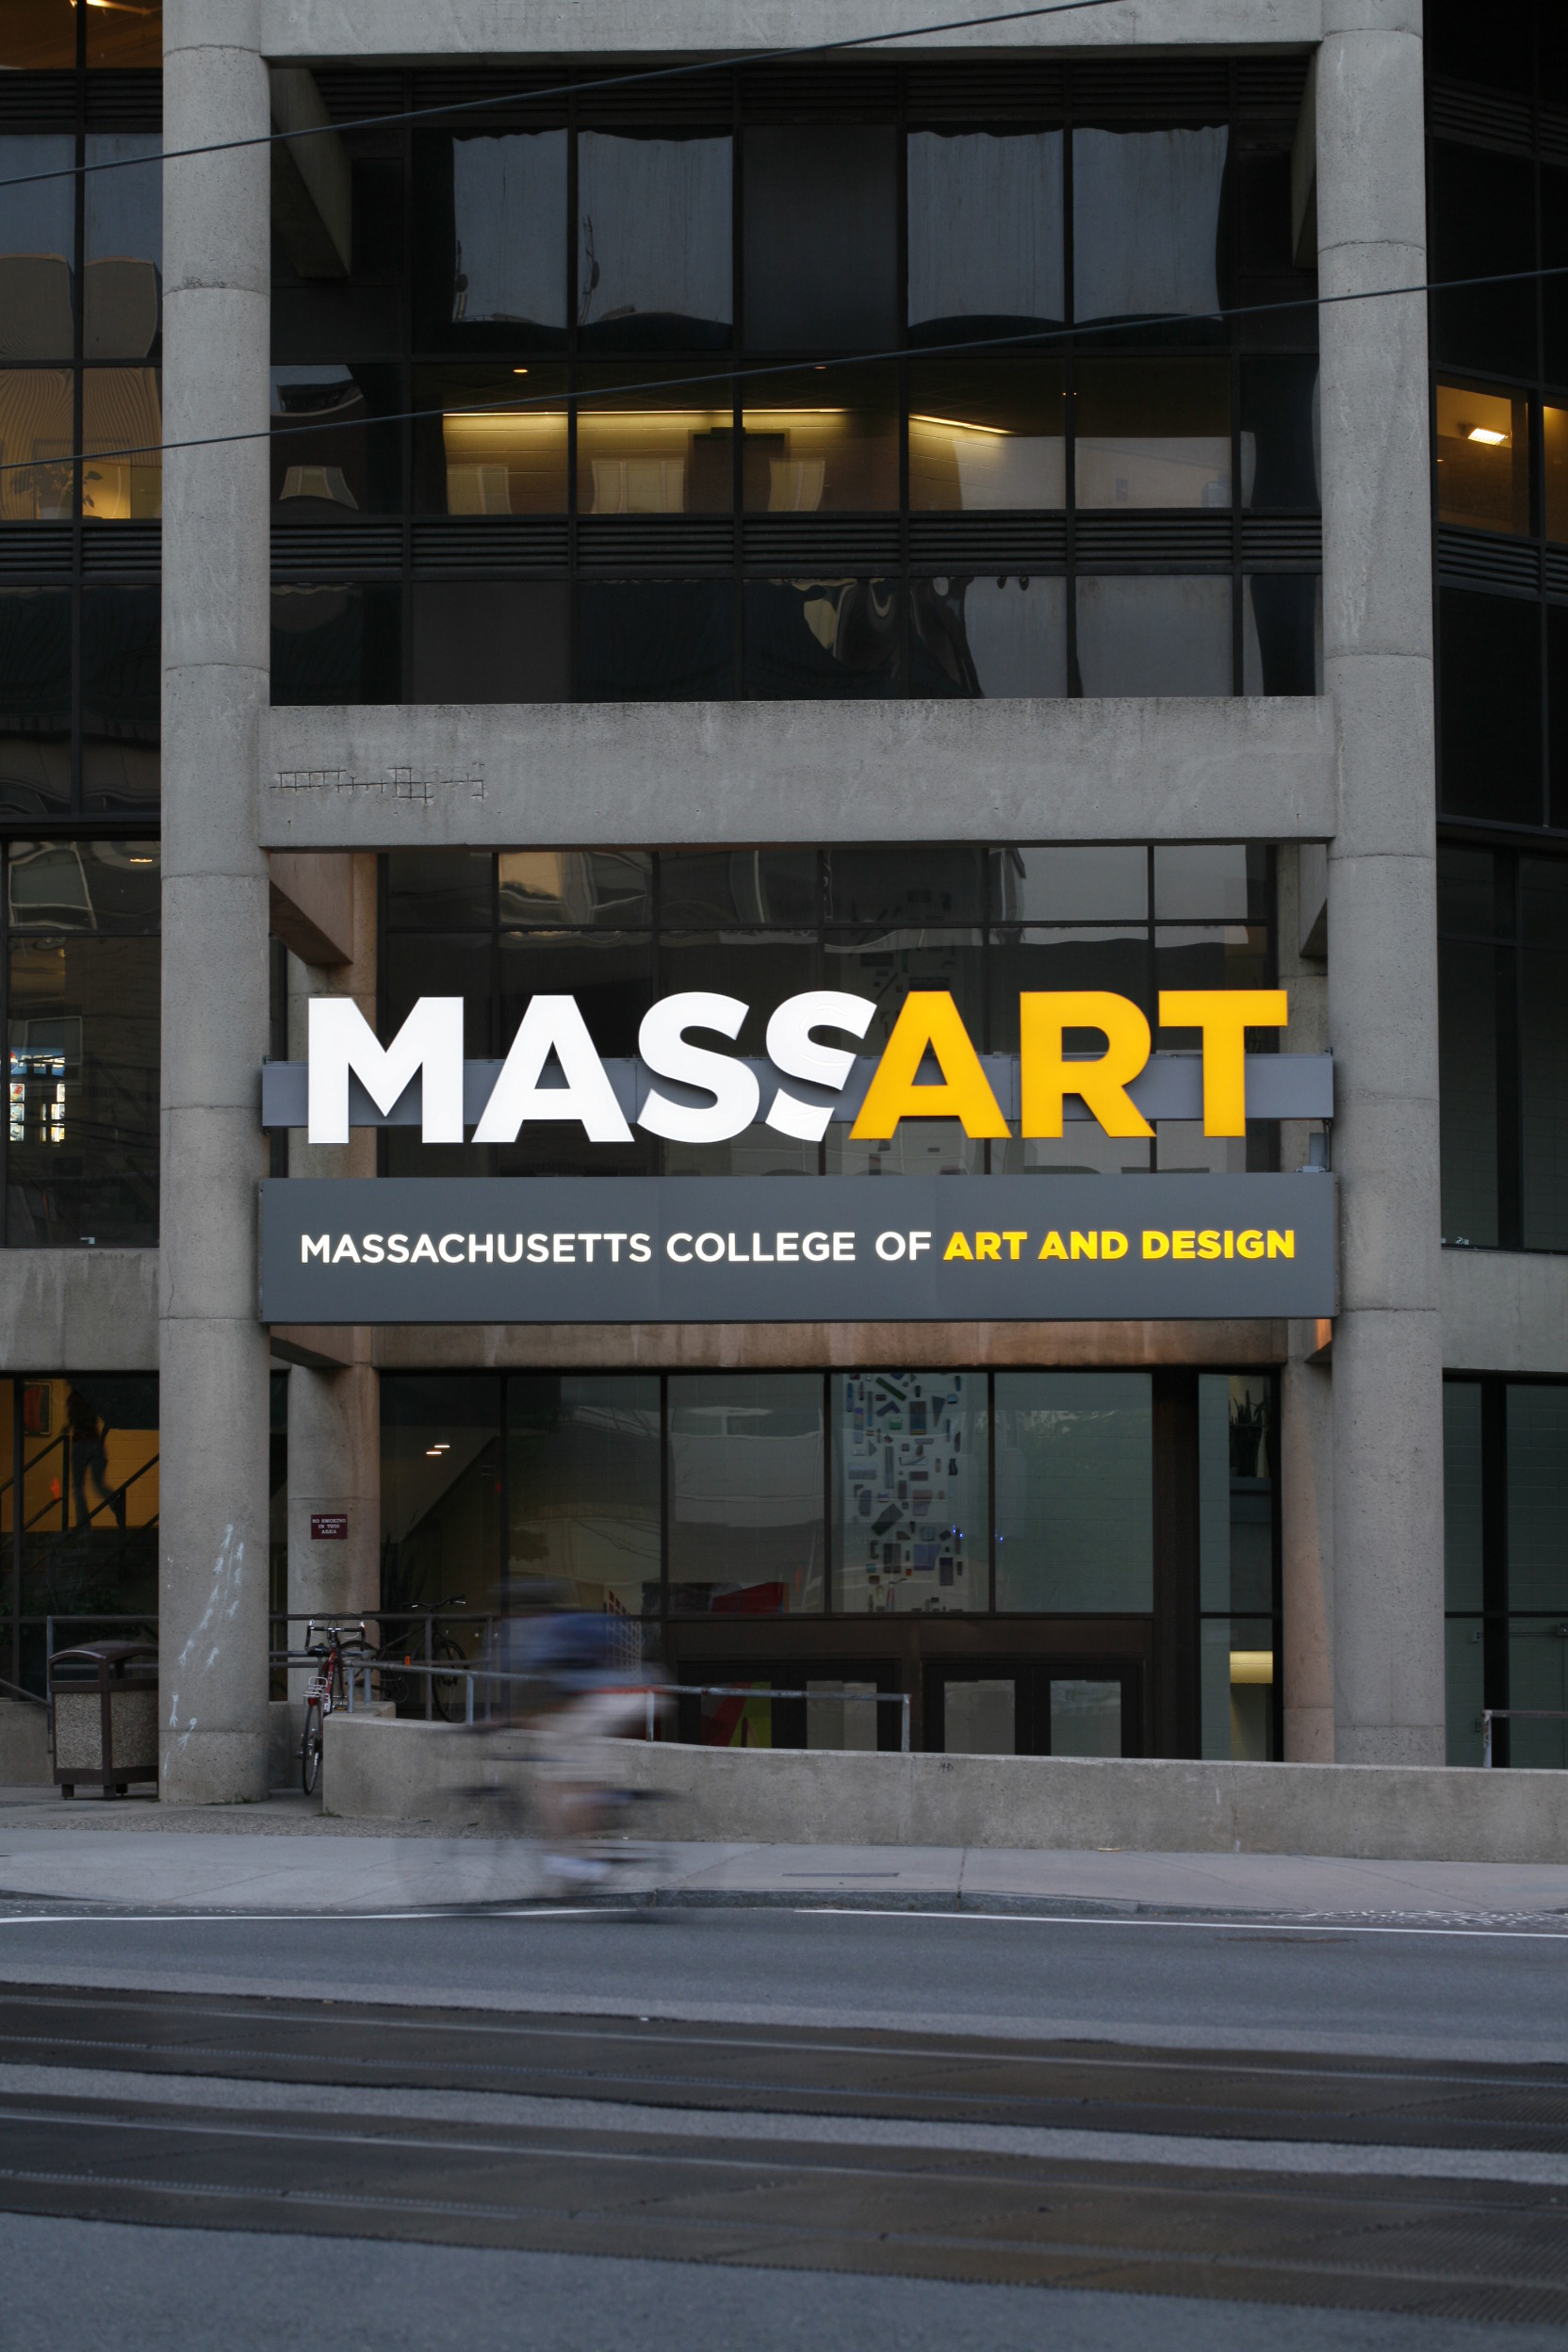 massachusetts college massart mass wikipedia colleges arts towers entrance freight academic visual anywhere produce farms grow english container shipping boston